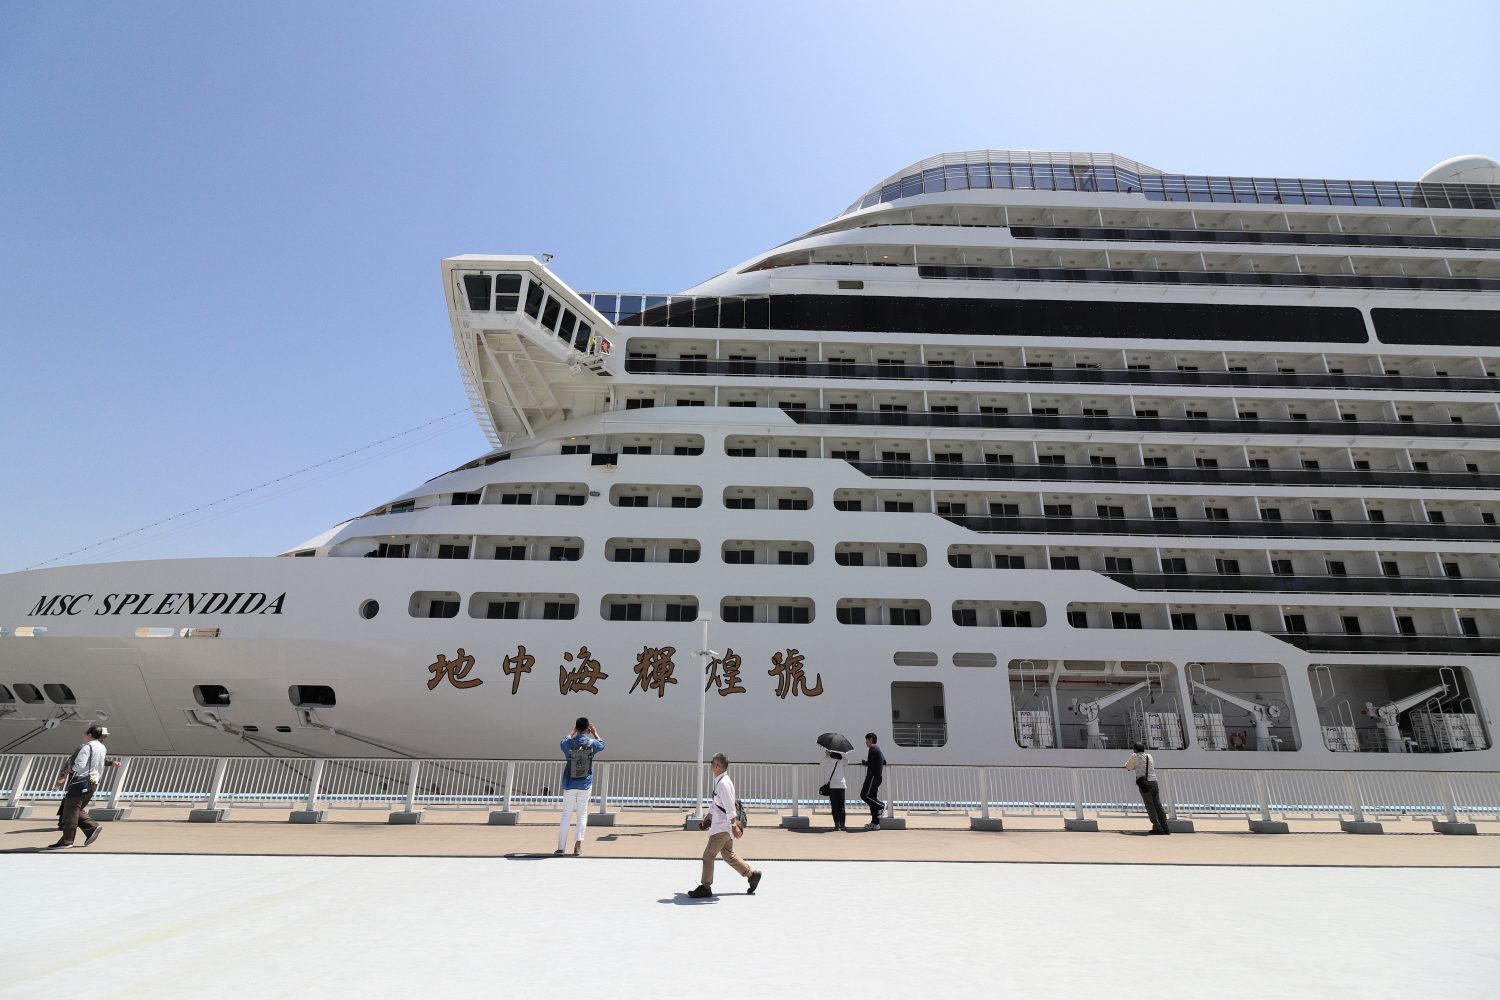 MSC Splendida Cruise Ship at KOBE PORT